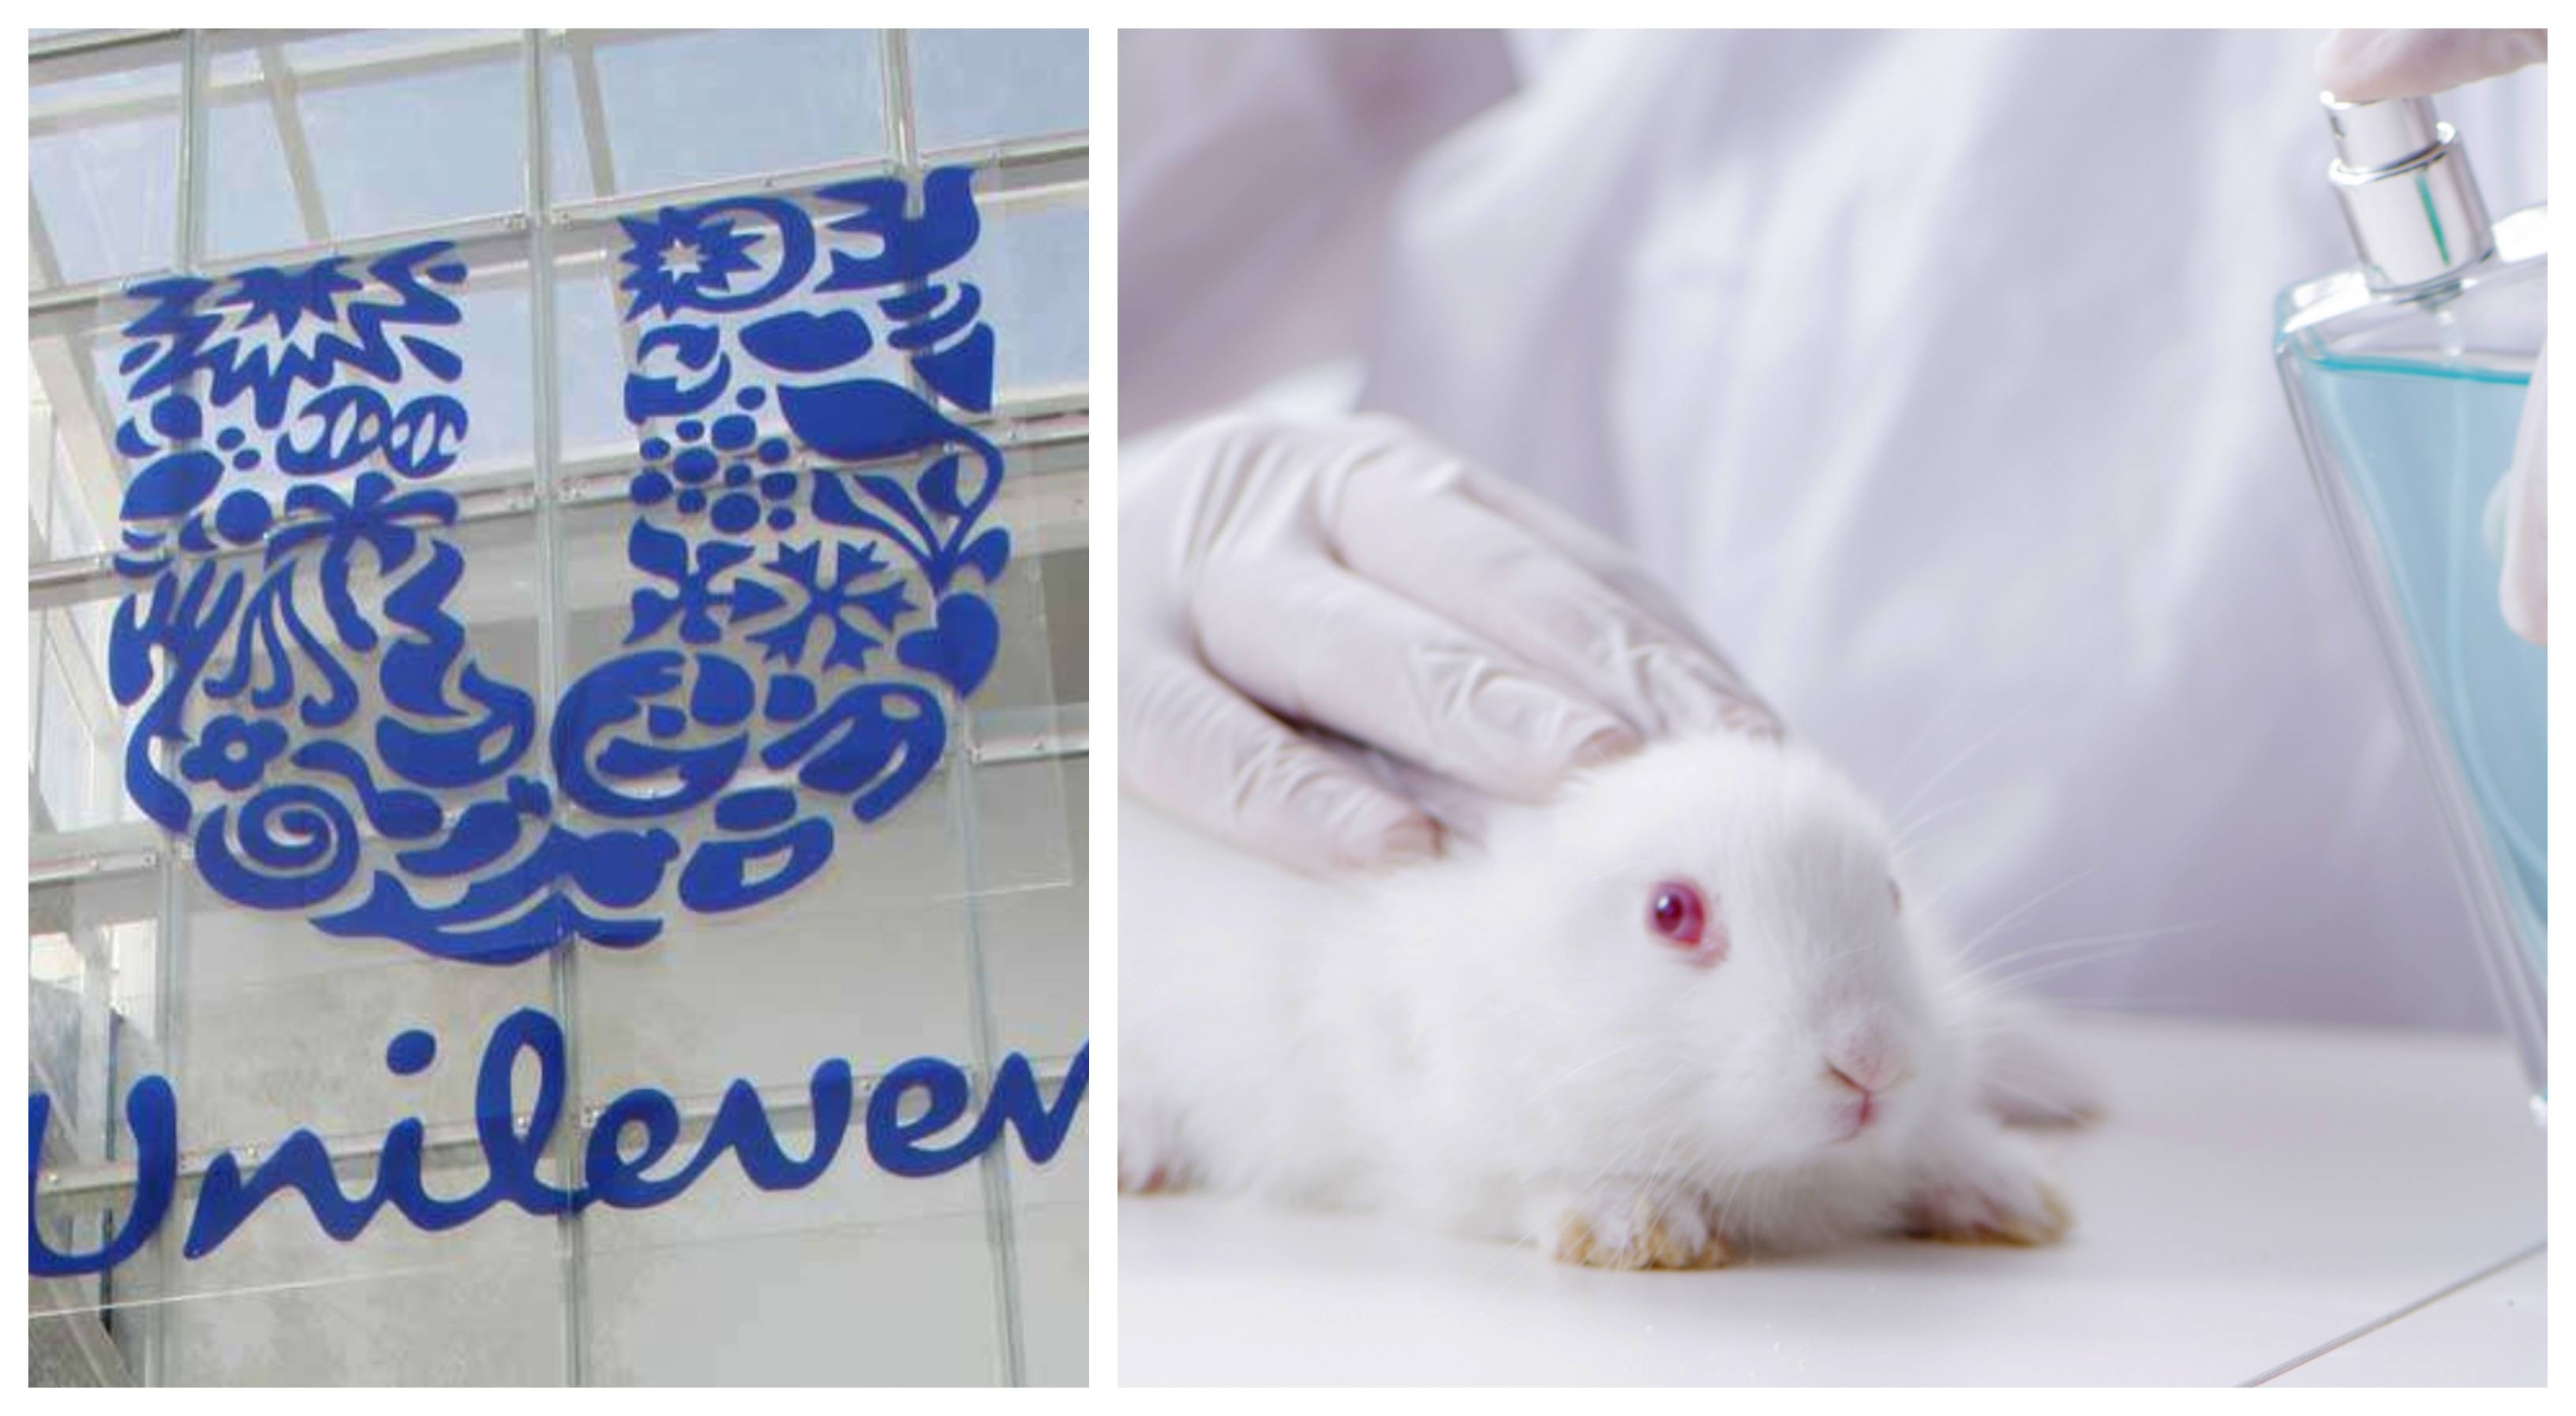 Unilever logo and a lab rabbit